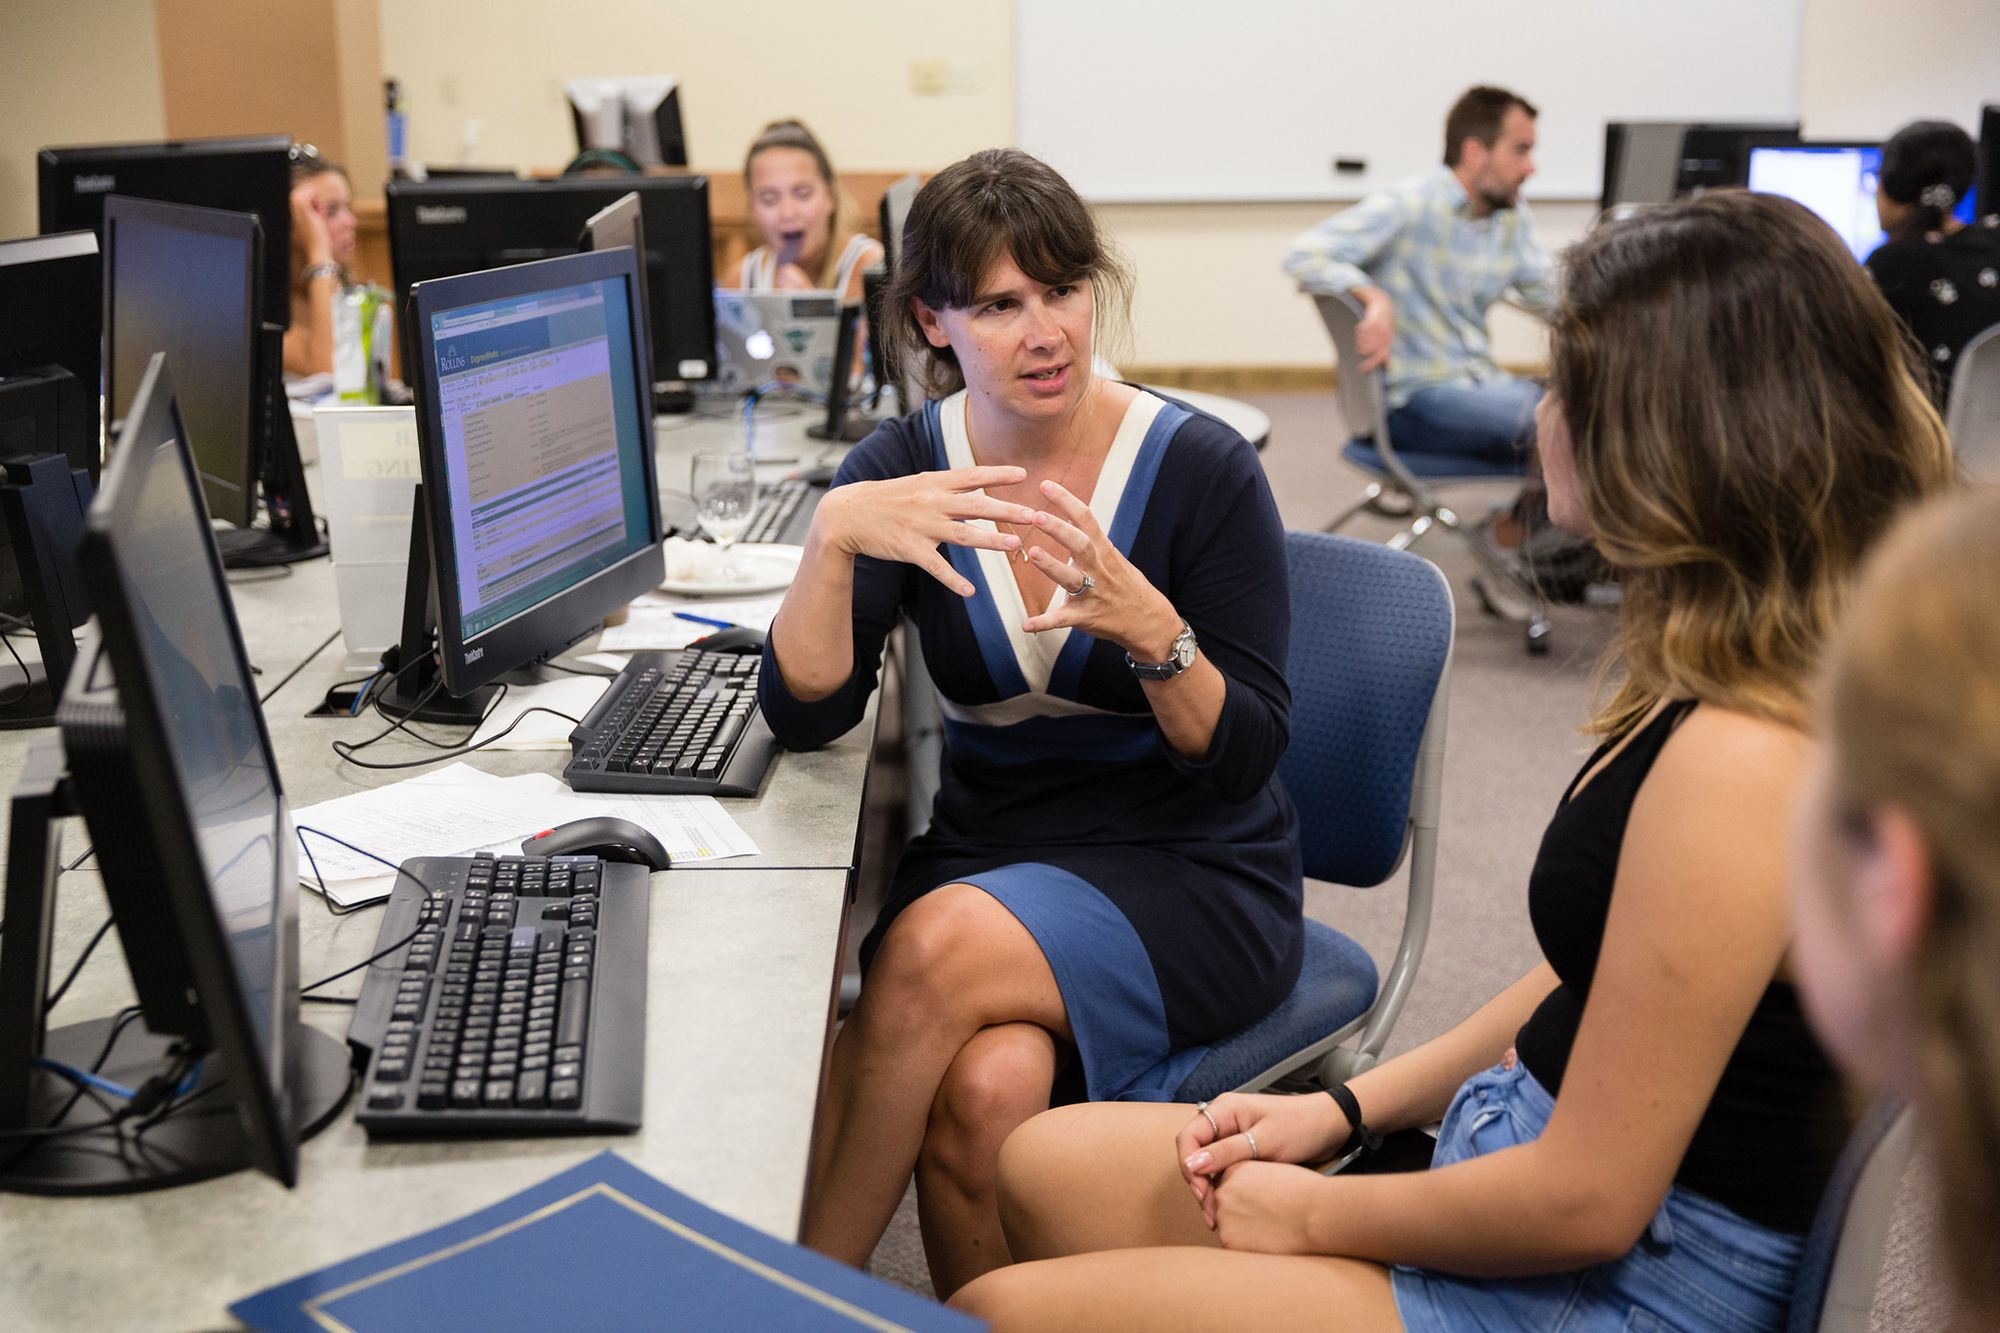 A college professor is sitting with her students in a computer lab explaining a problem.